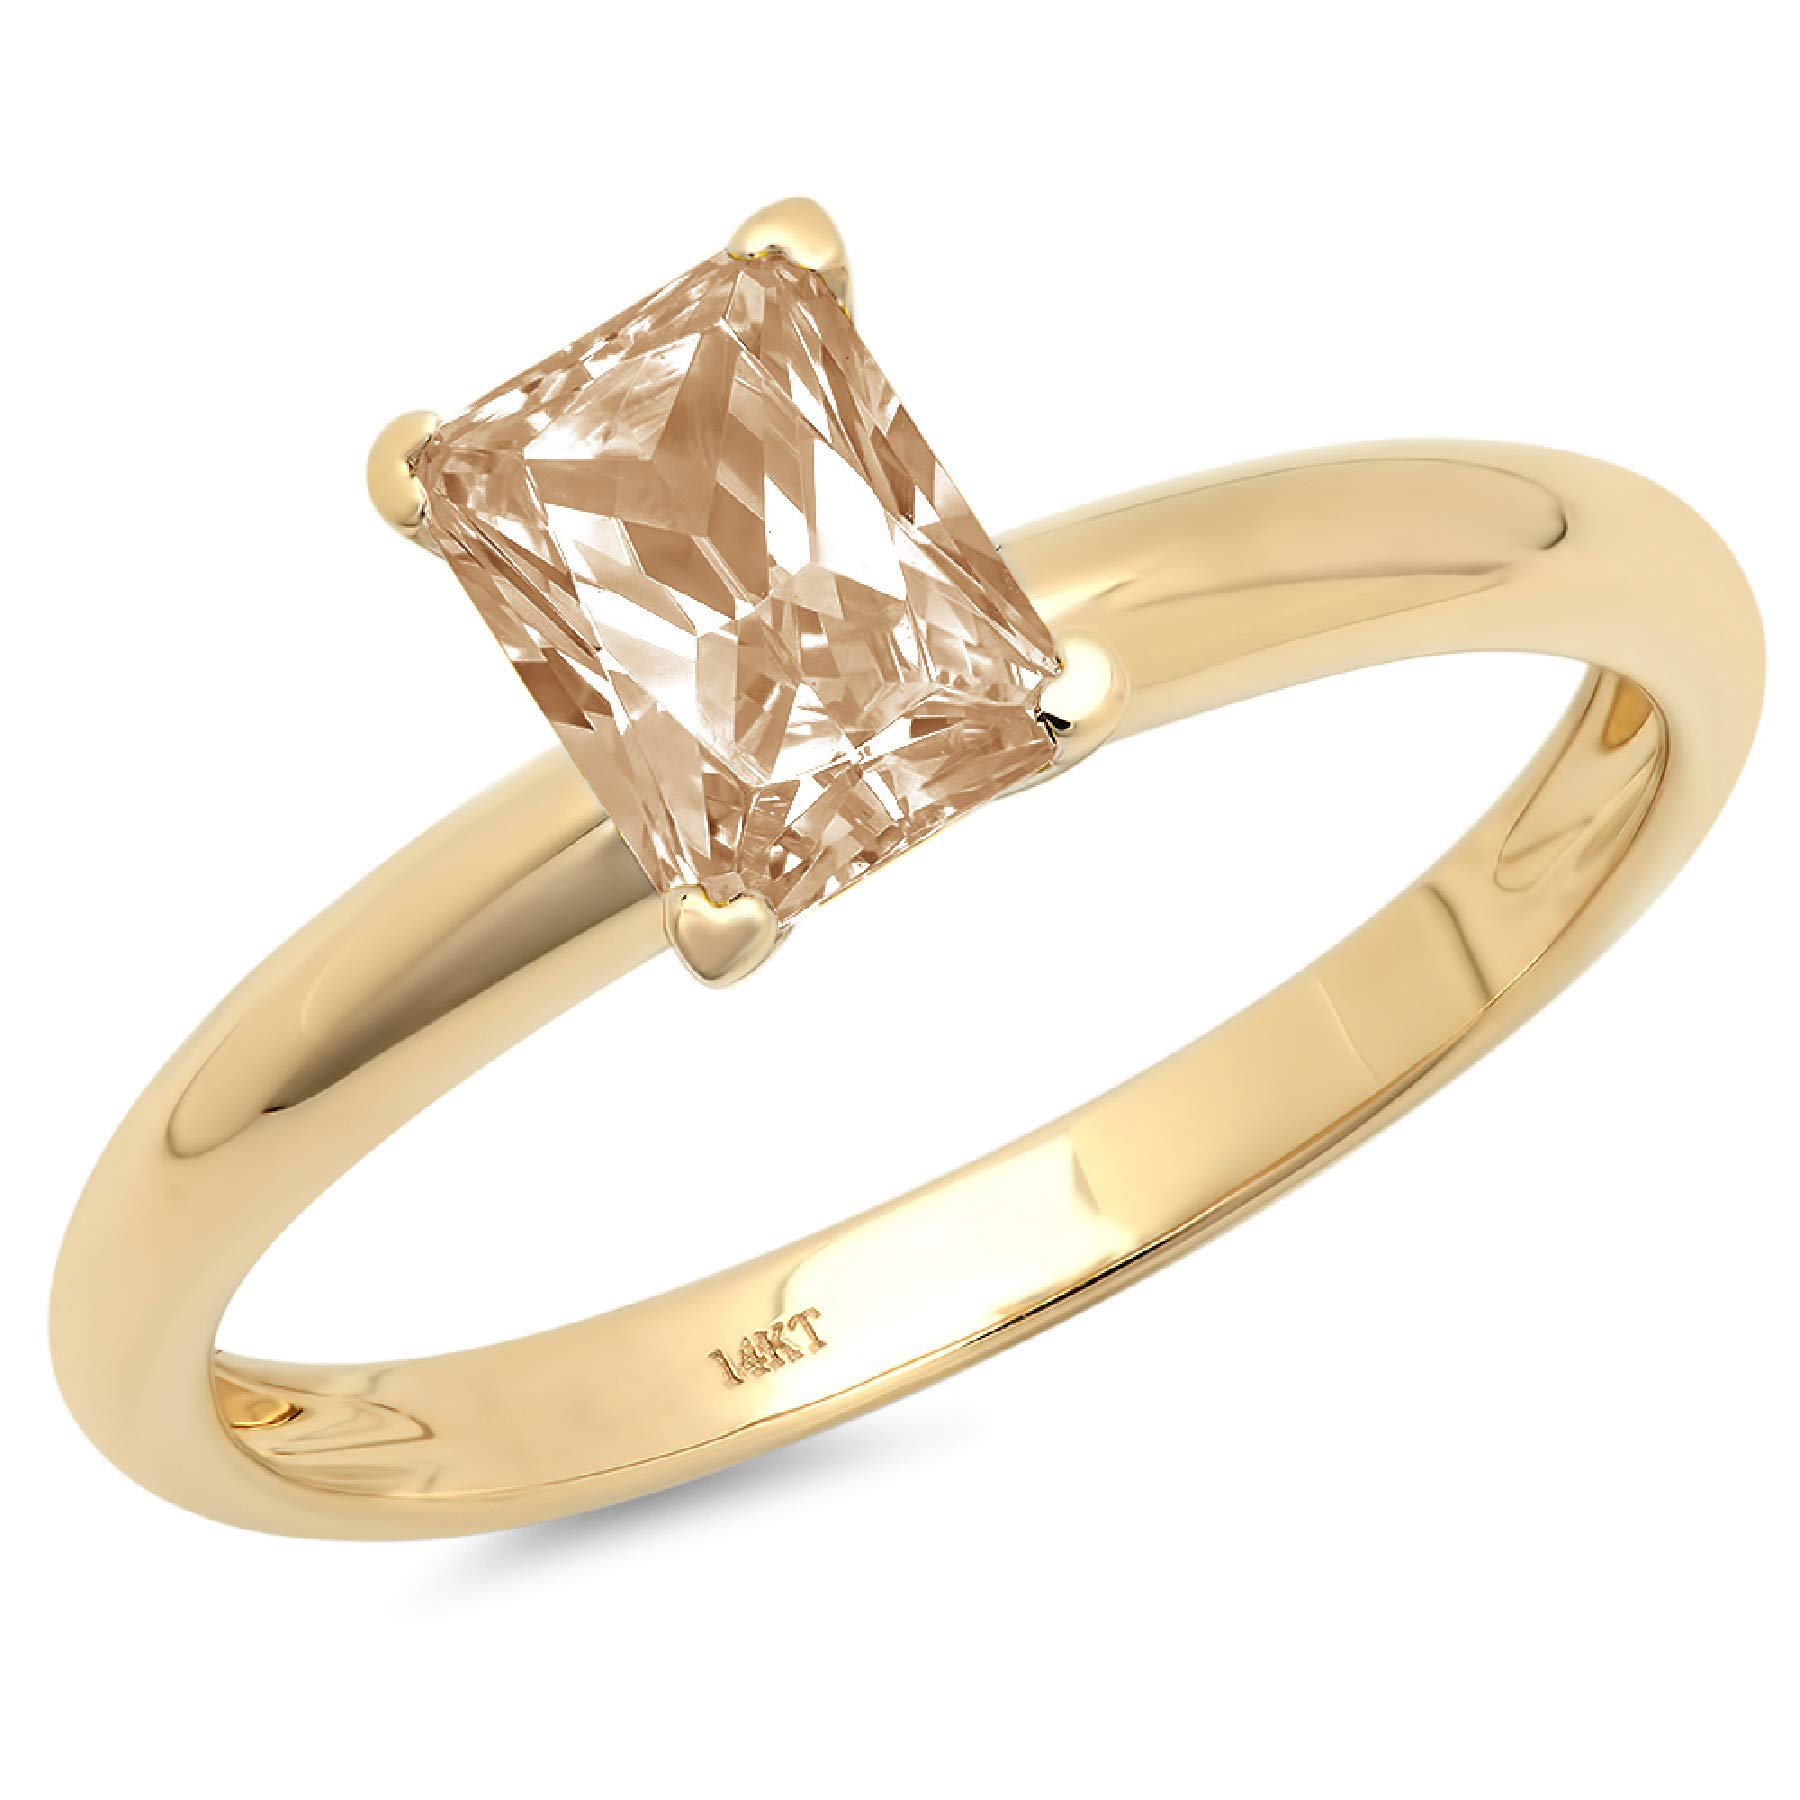 0.95ct Brilliant Emerald Cut Solitaire Brown Champagne Simulated Diamond CZ Ideal VVS1 D 4-Prong Classic Designer Statement Ring Solid Real 14k Yellow Gold for Women